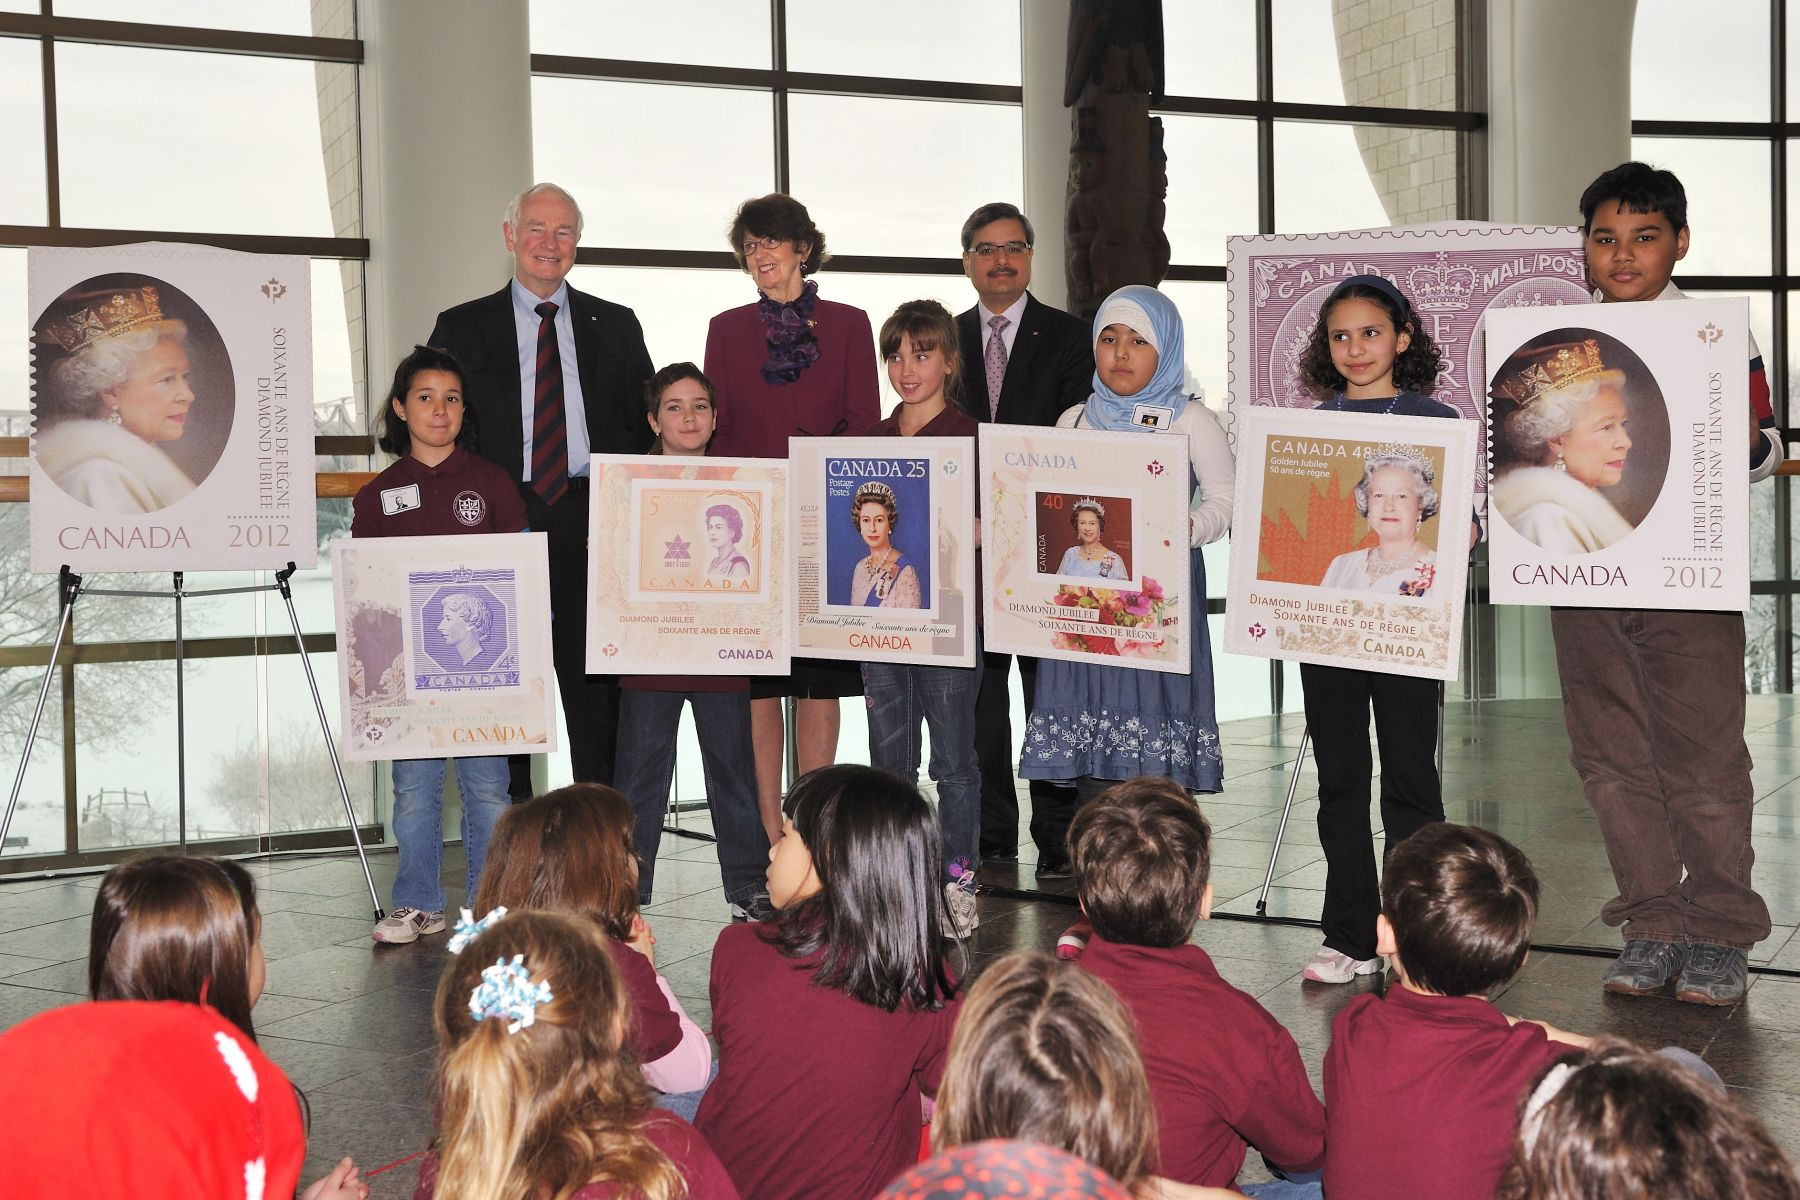 The Right Honourable David Johnston, Governor General of Canada, along with the Honourable Marjory LeBreton, Leader of the Government in the Senate, Mr. Deepak Chopra, President and Chief Executive Officer of Canada Post, and third grade students from two Ottawa-Gatineau area schools, unveiled commemorative stamps in celebration of Her Majesty Queen Elizabeth II's Diamond Jubilee.